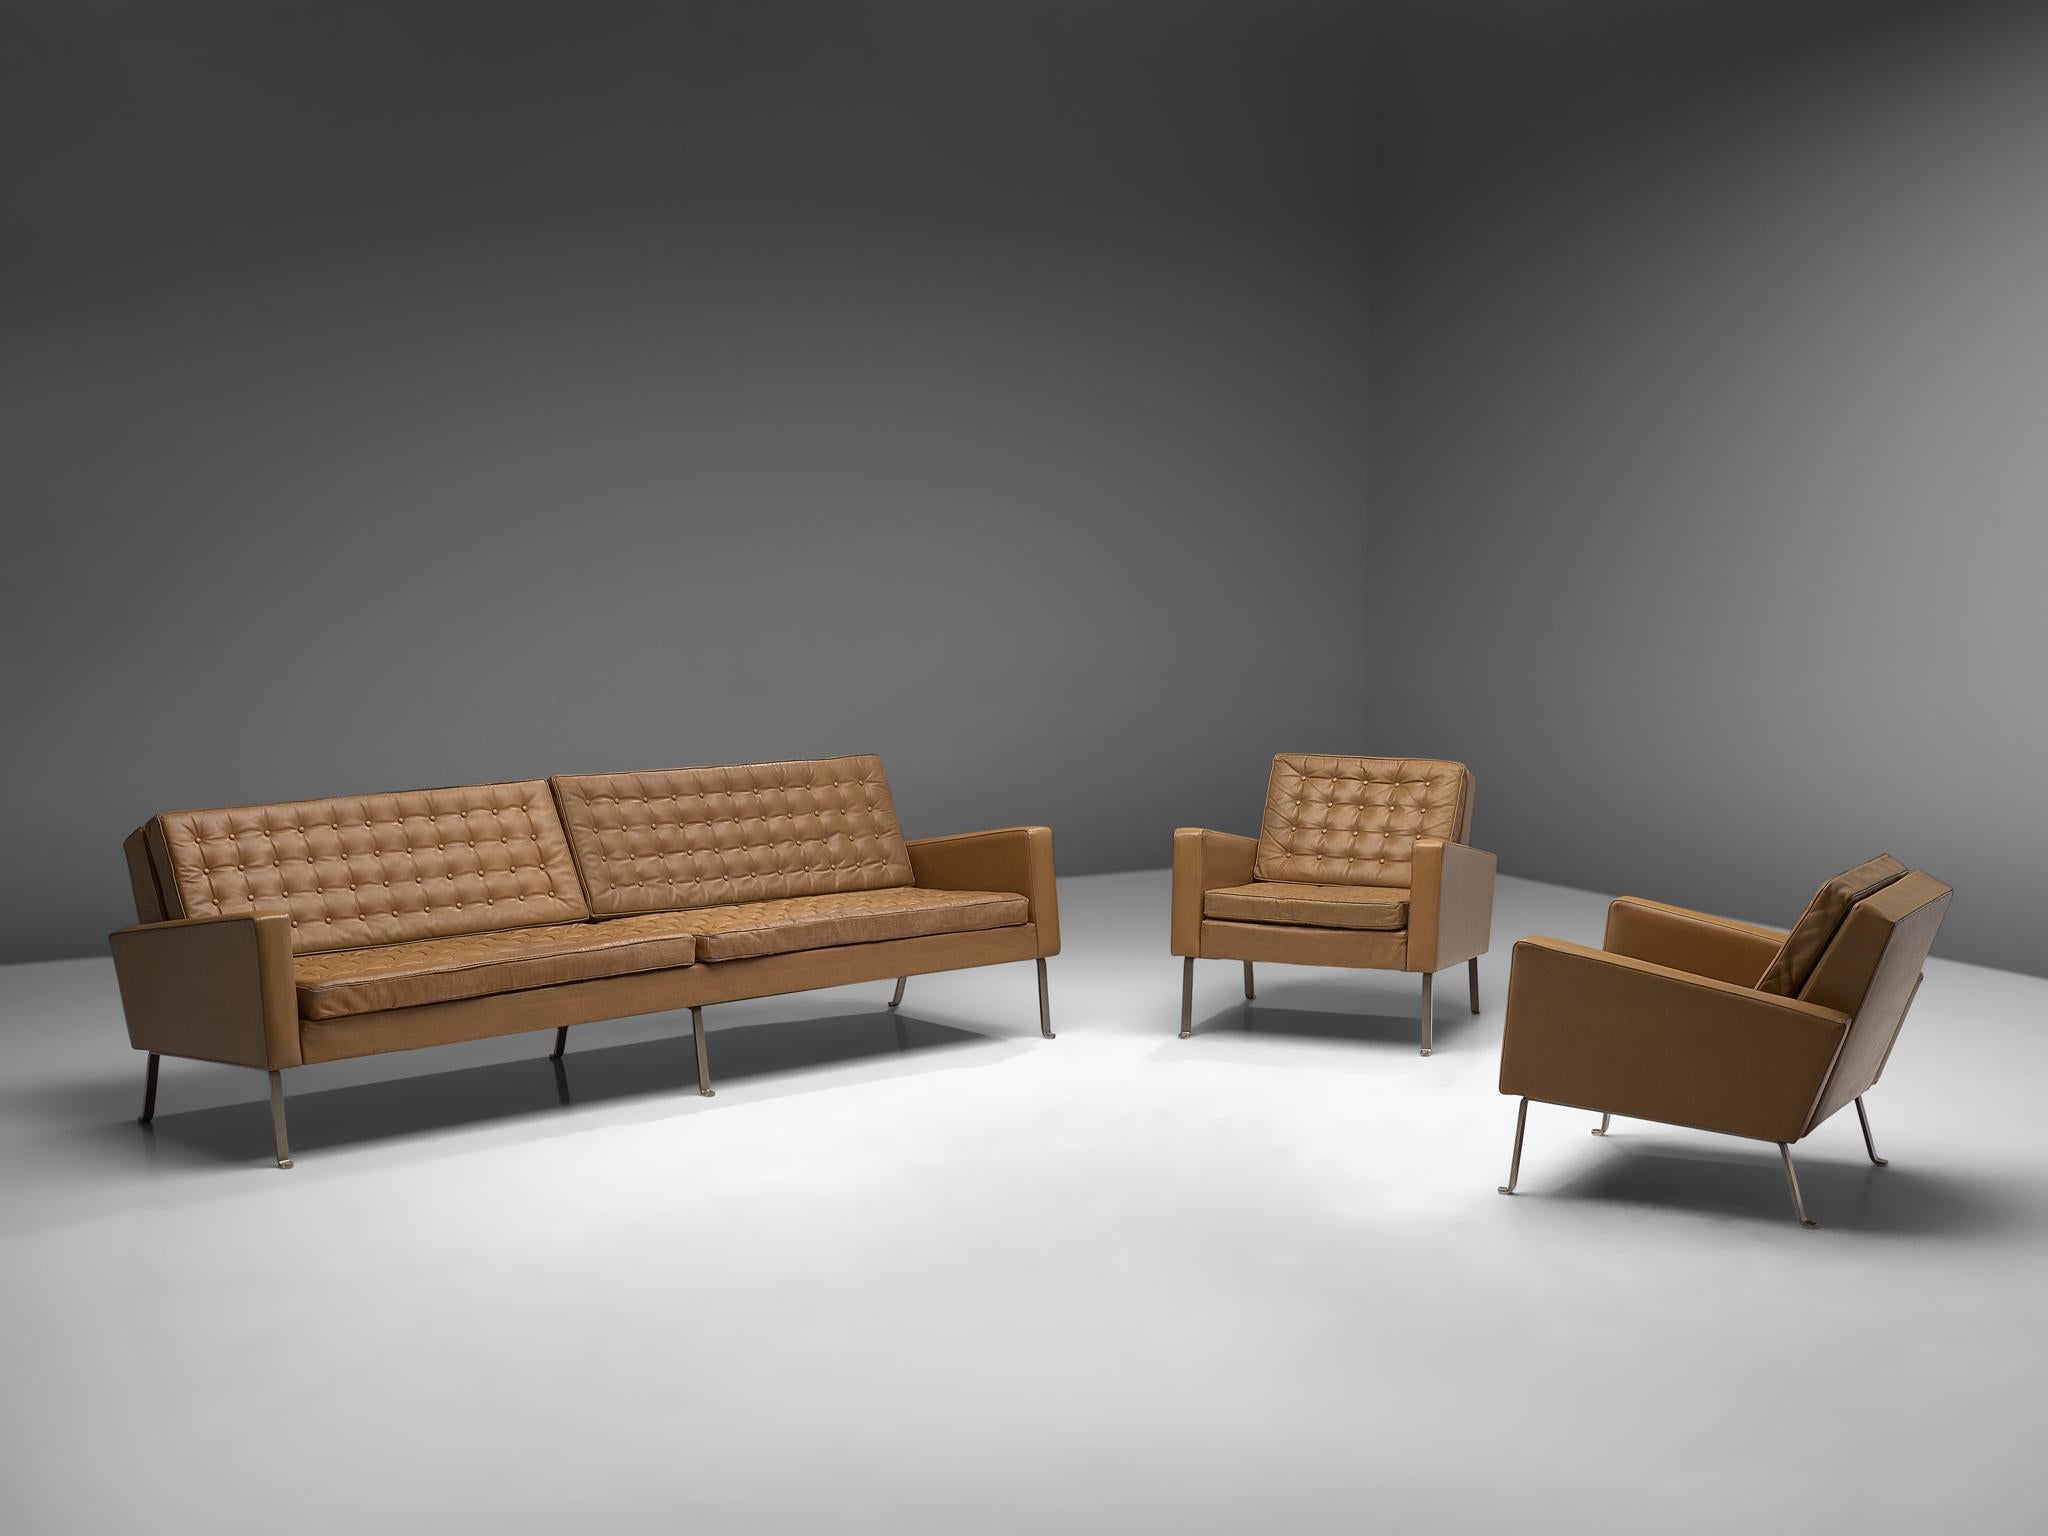 Marvelous Roland Rainer Large 4 Seat Sofa In Leather For Wilkhahn Germany 1960S Alphanode Cool Chair Designs And Ideas Alphanodeonline